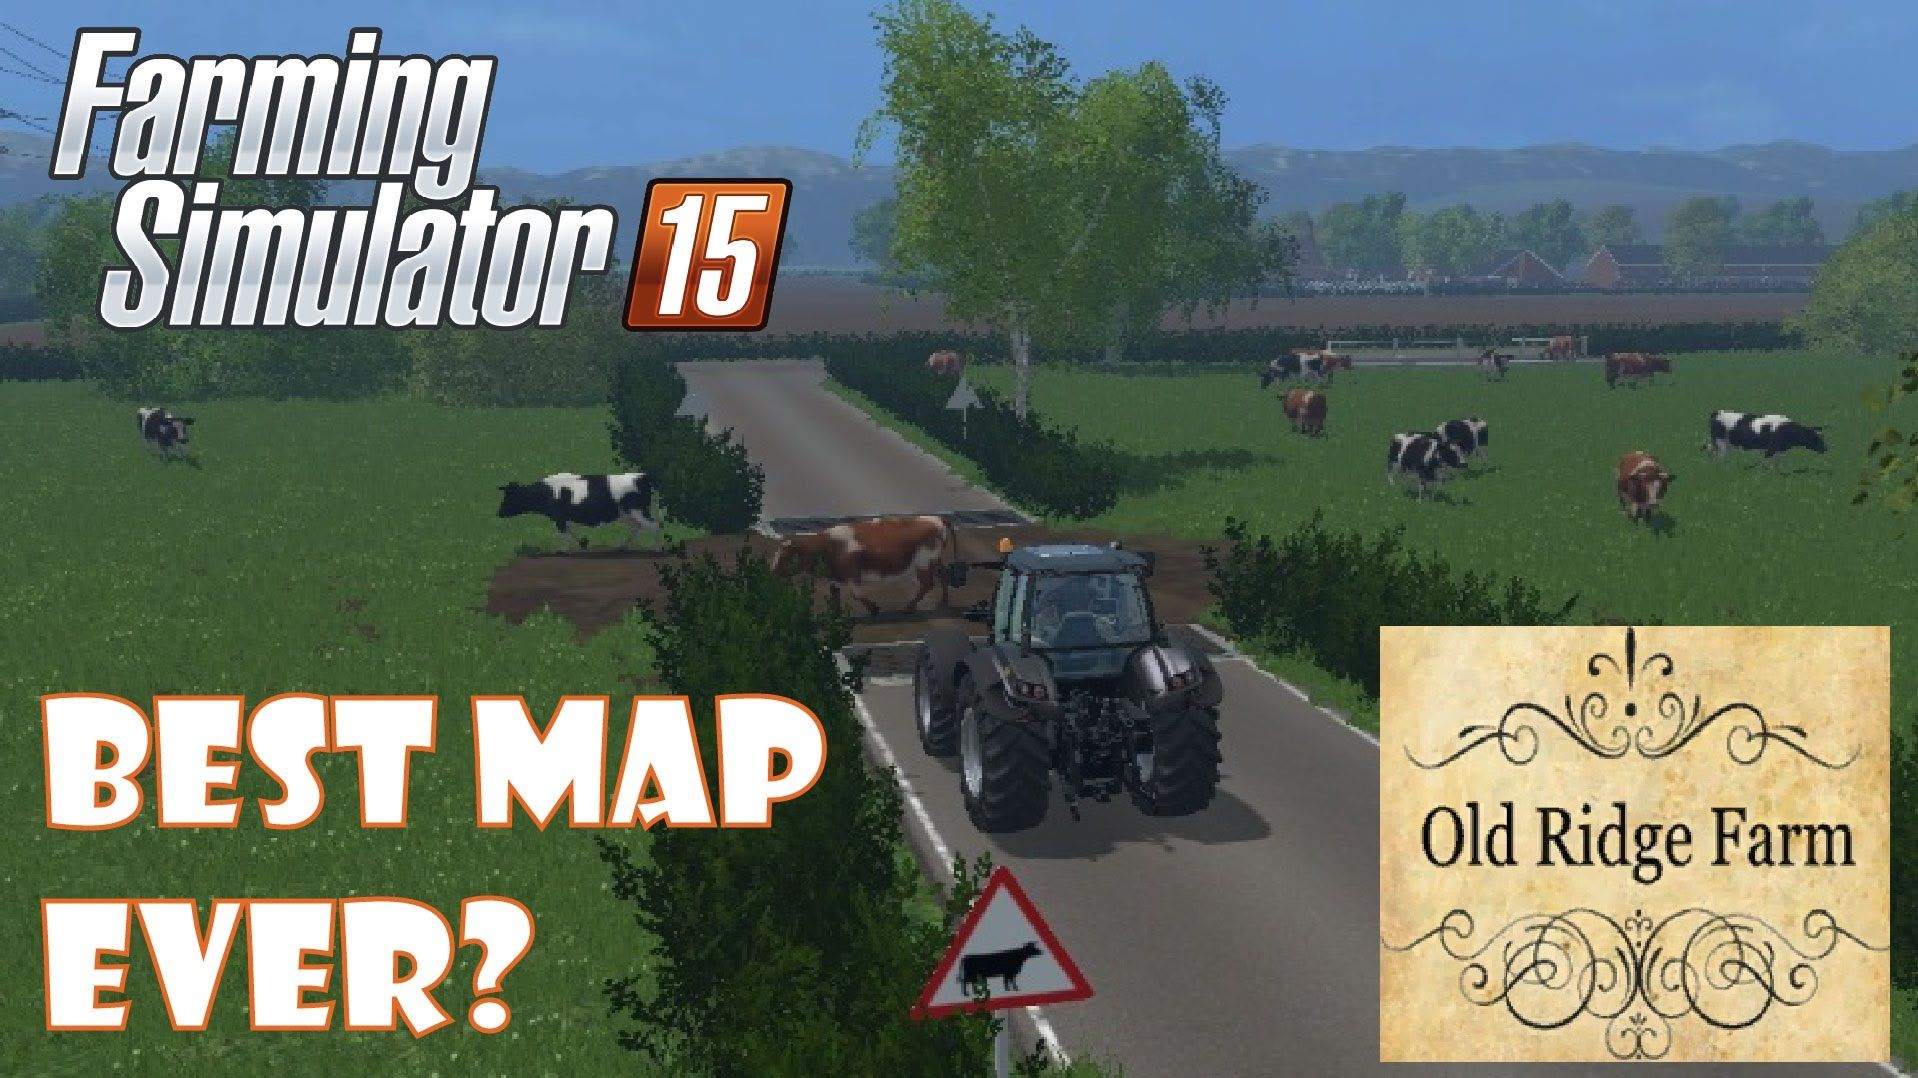 Old Ridge Farm Review The Best Map